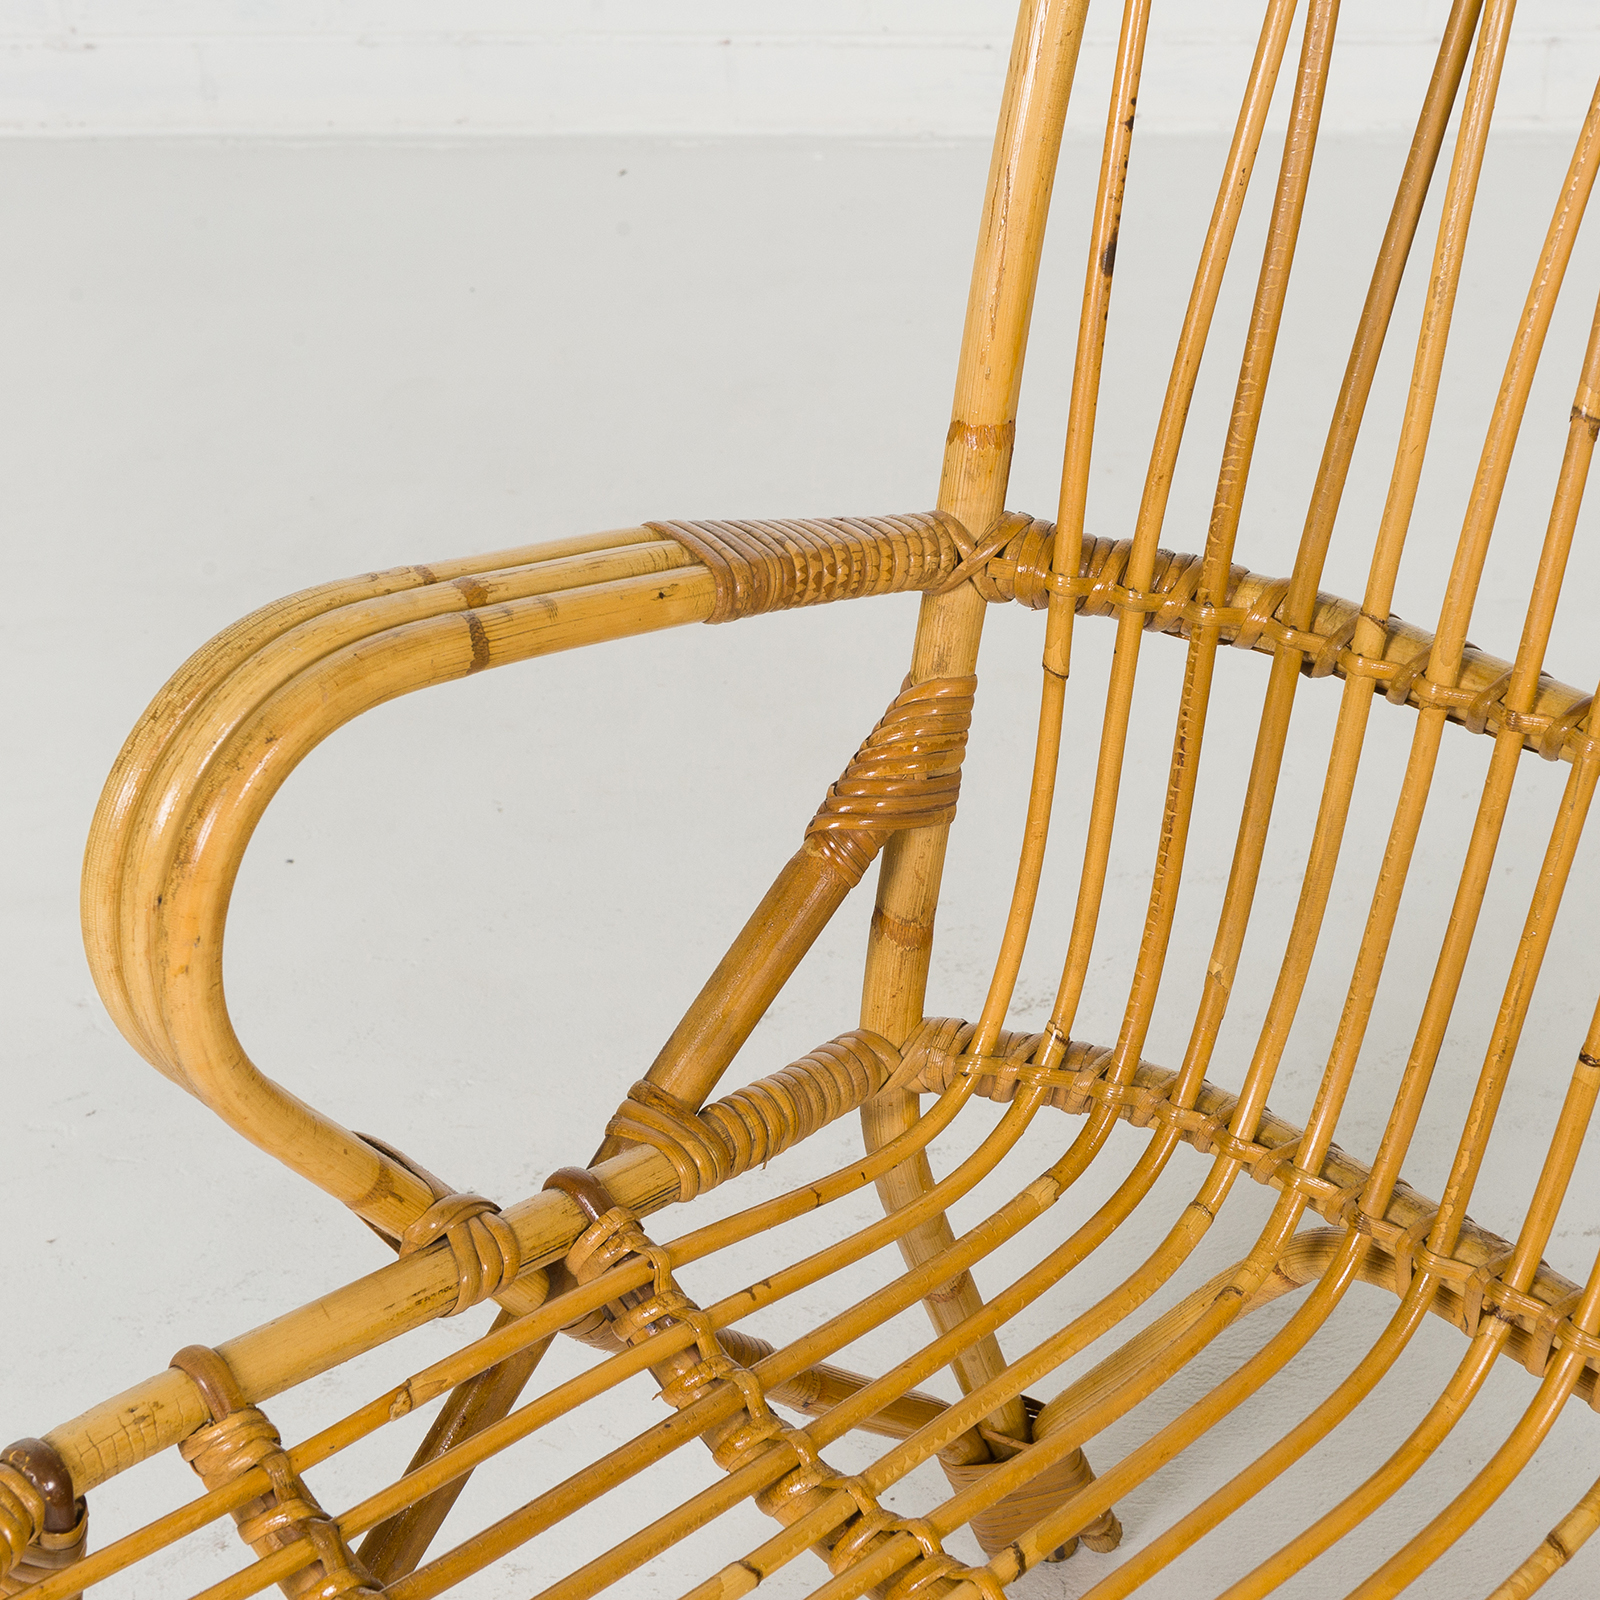 2 Seat Wicker Sofa In Bamboo With Coiled Socks 1960s Denmark 05